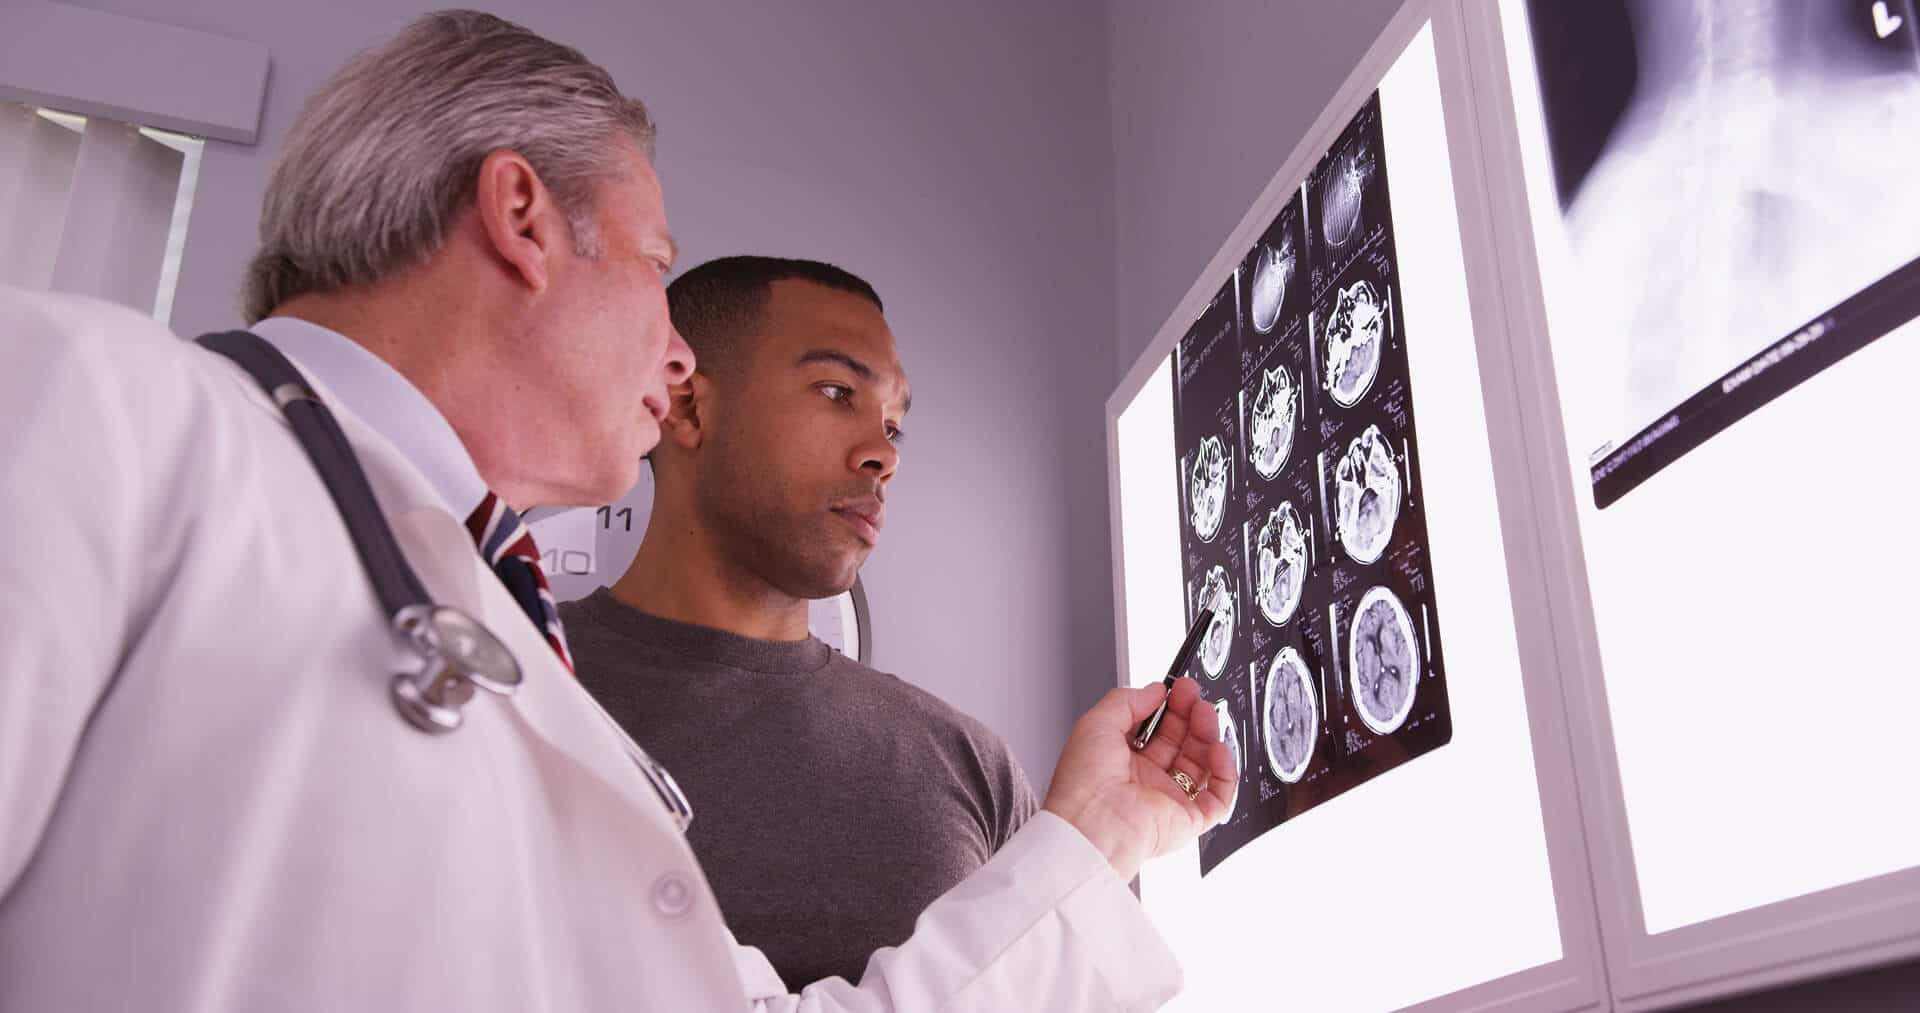 Doctor Explaining Traumatic Brain Injury To Patient